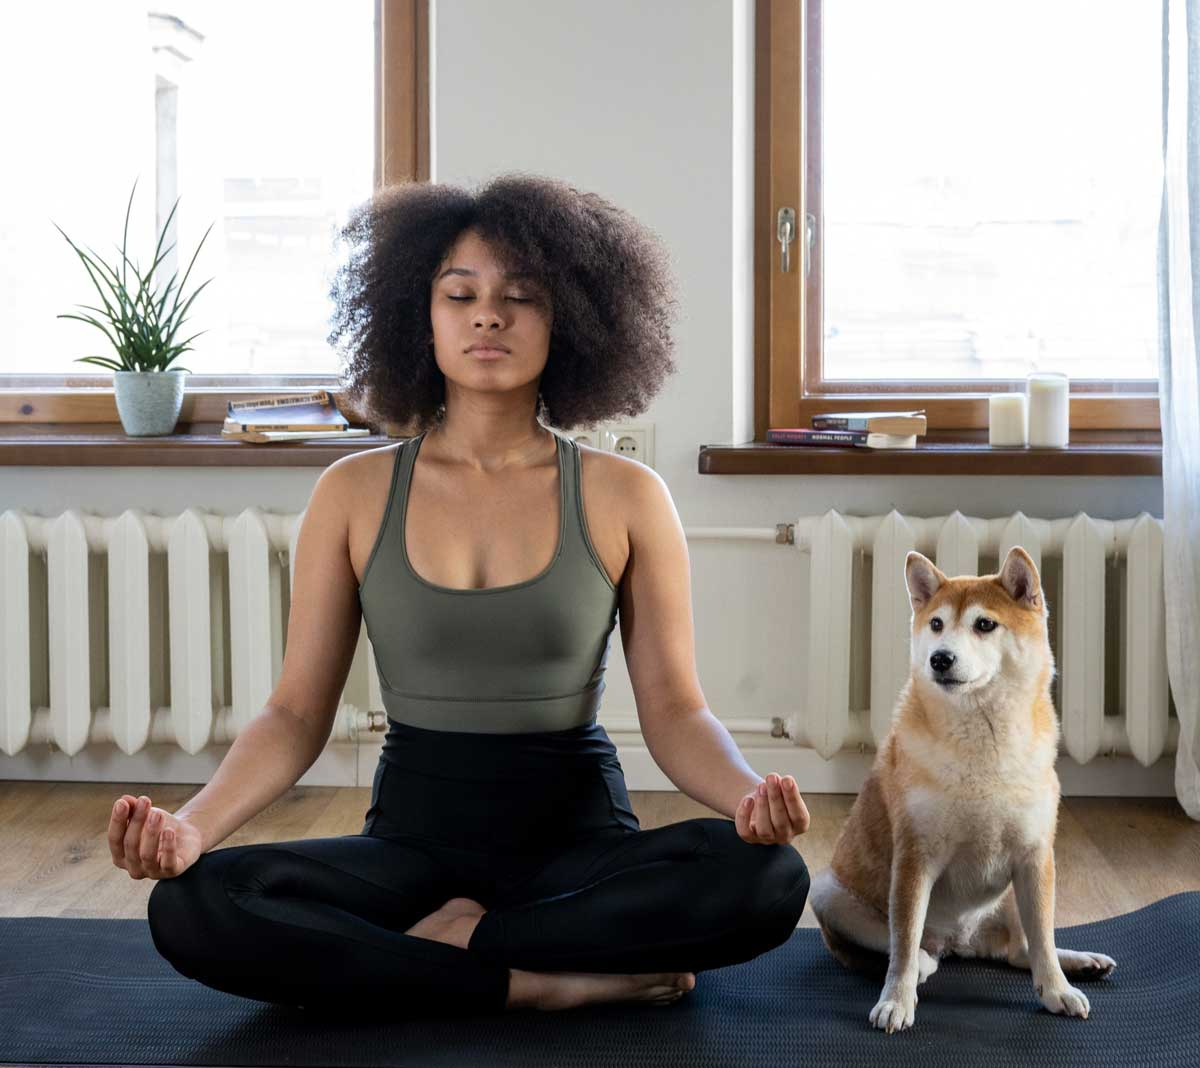 Woman sits meditating at home, with dog